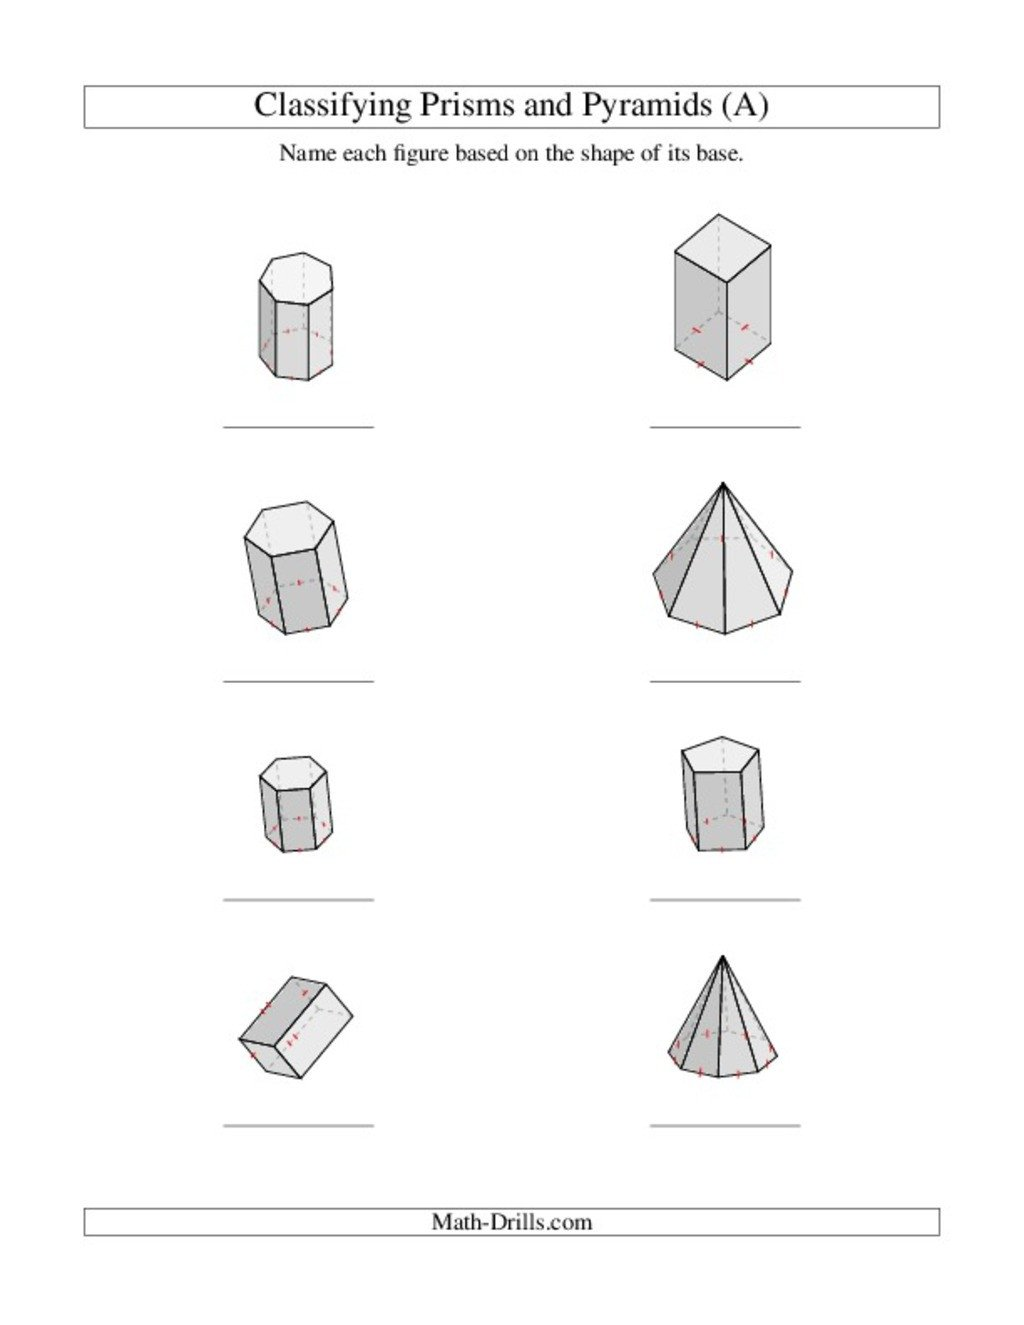 3d Shapes Worksheets 2nd Grade solid Figures Lesson Plans & Worksheets